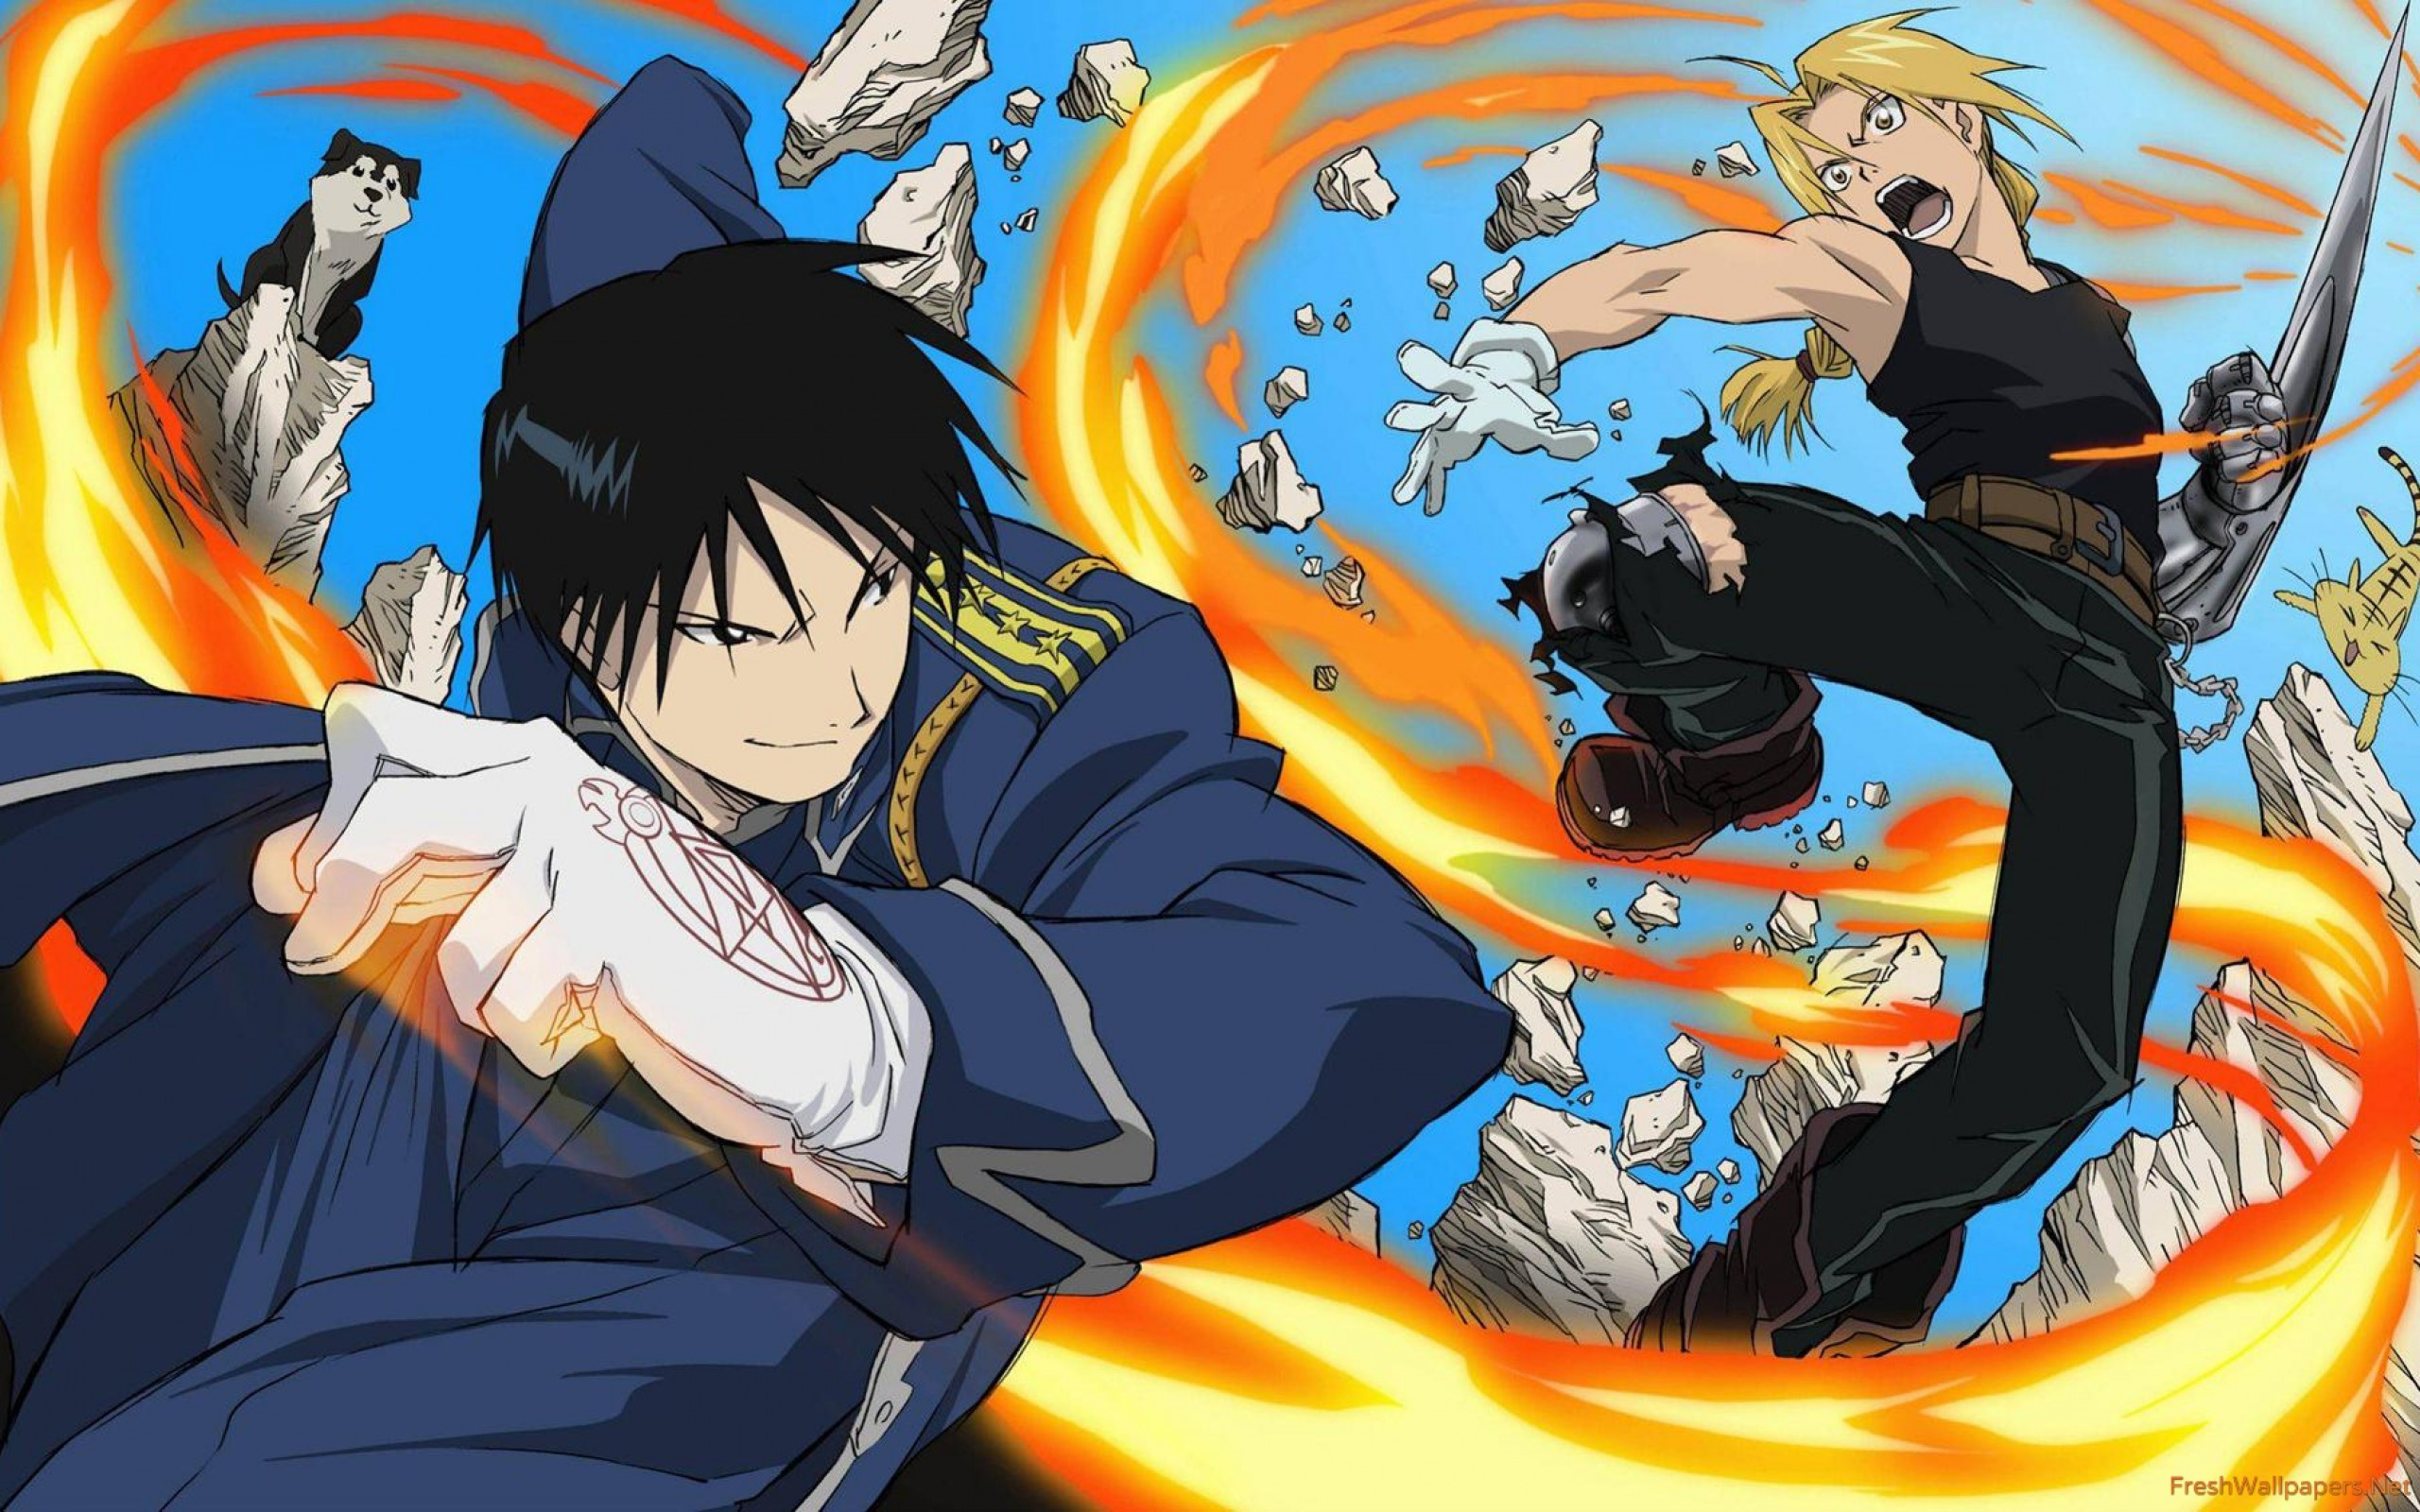 2560x1600 Edward Elric and Roy Mustang - Fullmetal Alchemist wallpaper